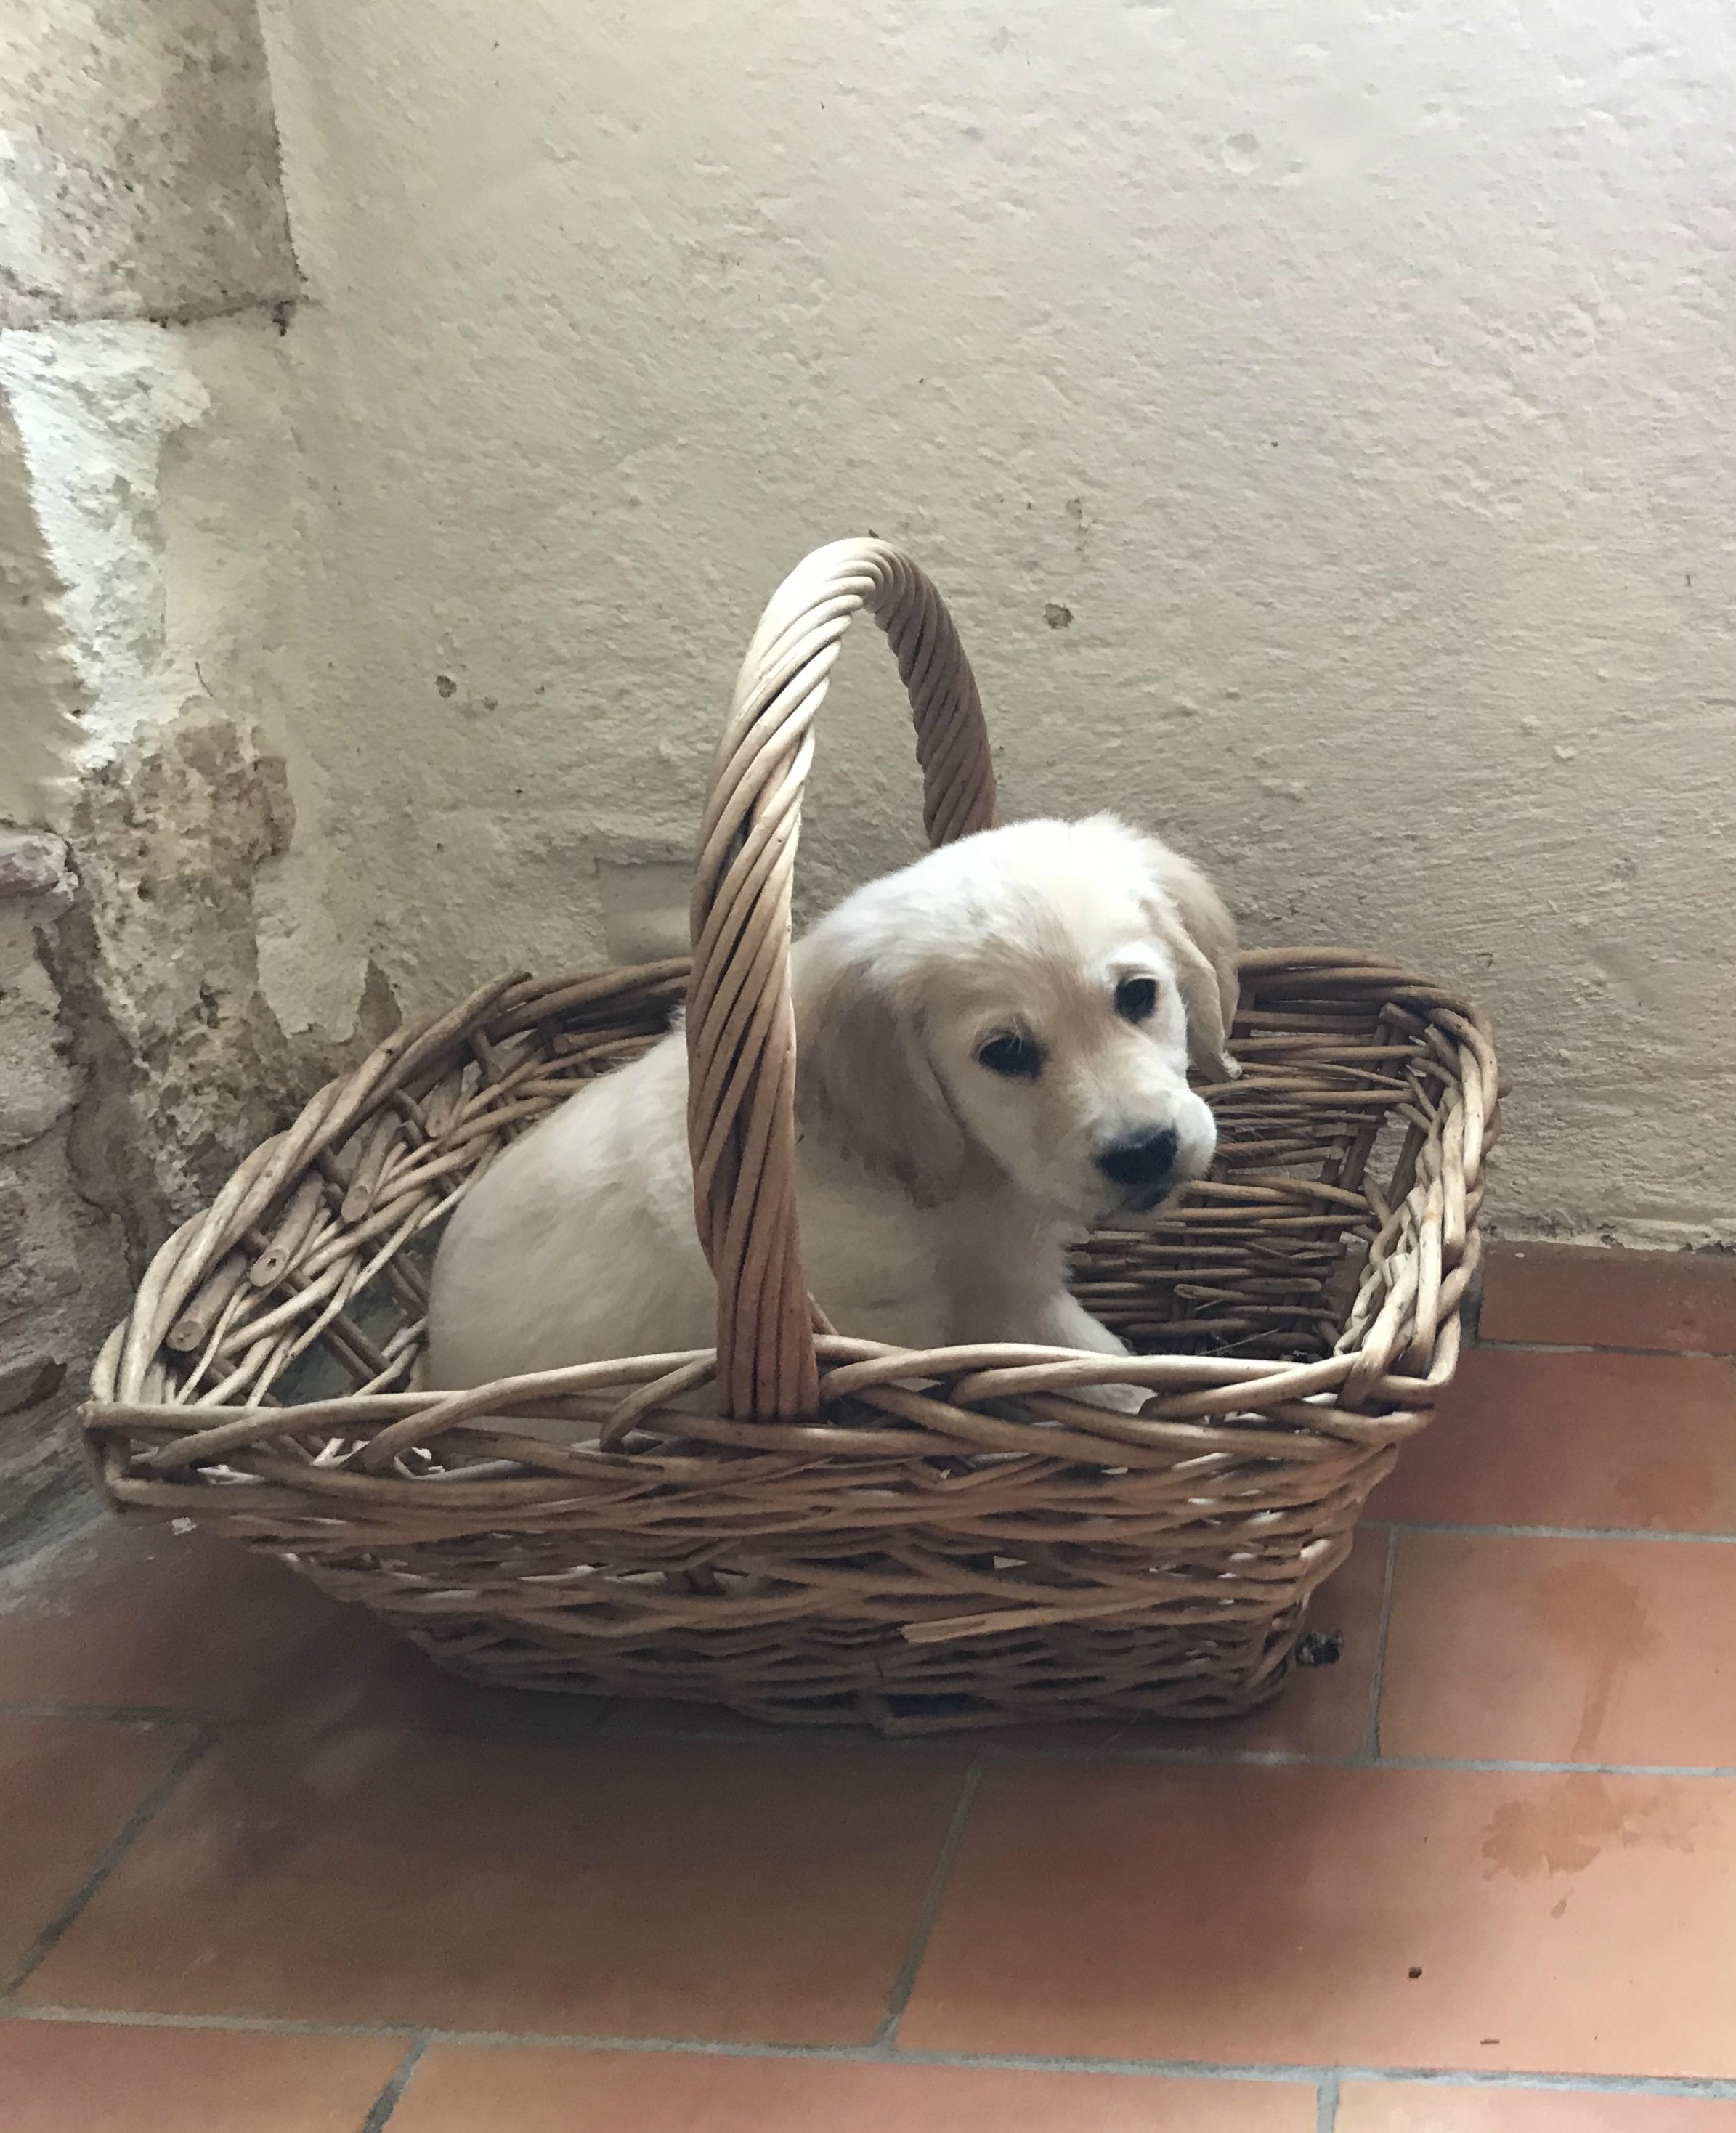 In the kindling basket, her love of sticks is starting early.